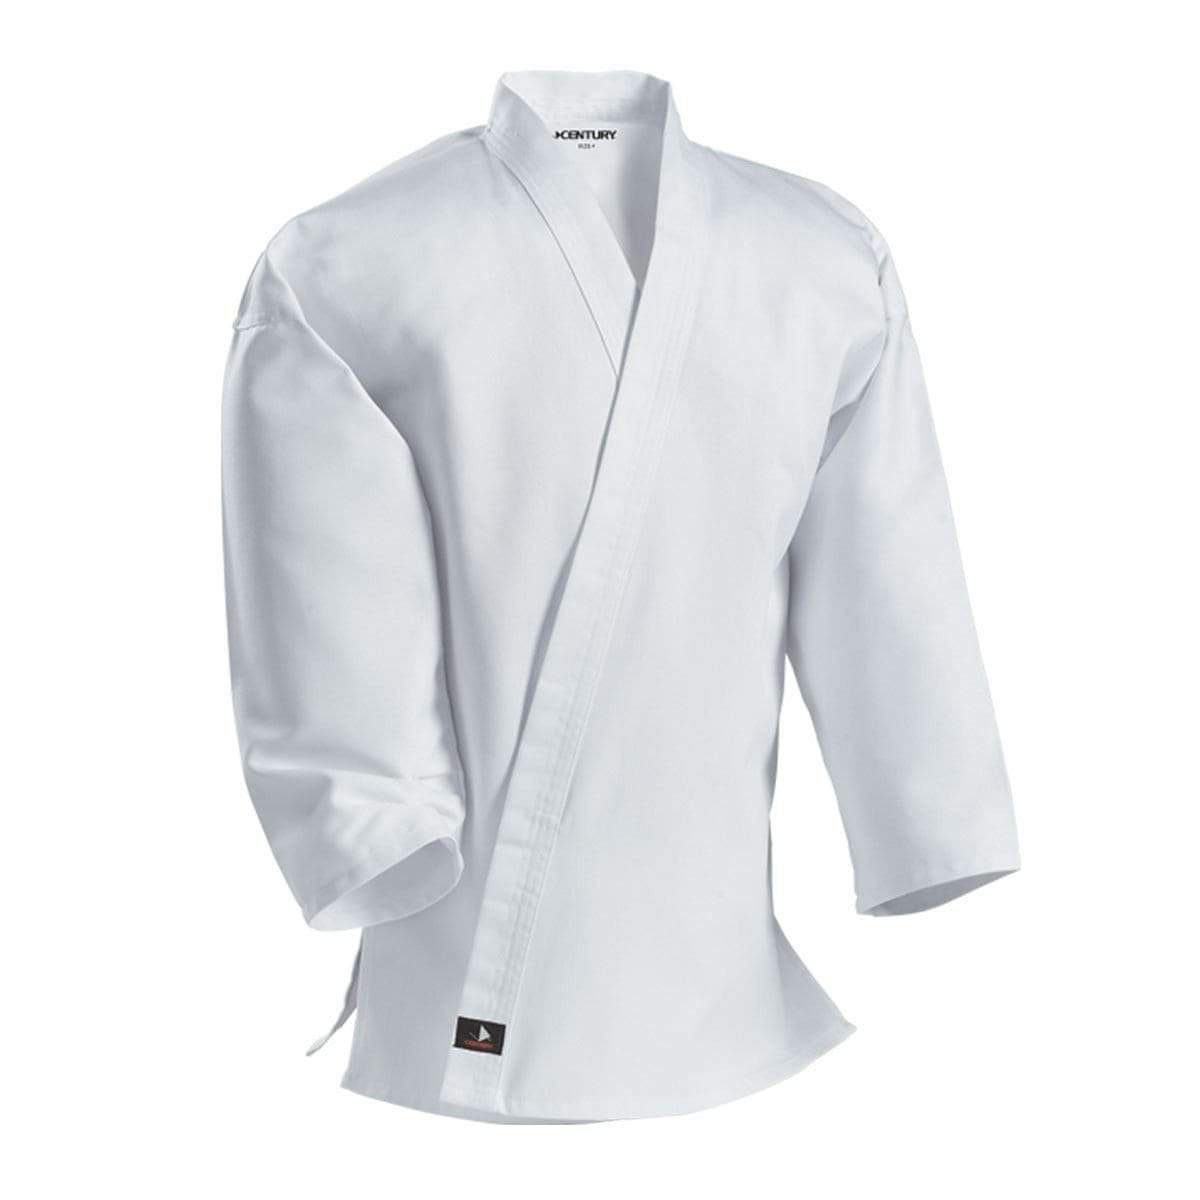 Middleweight Jacket by Century White